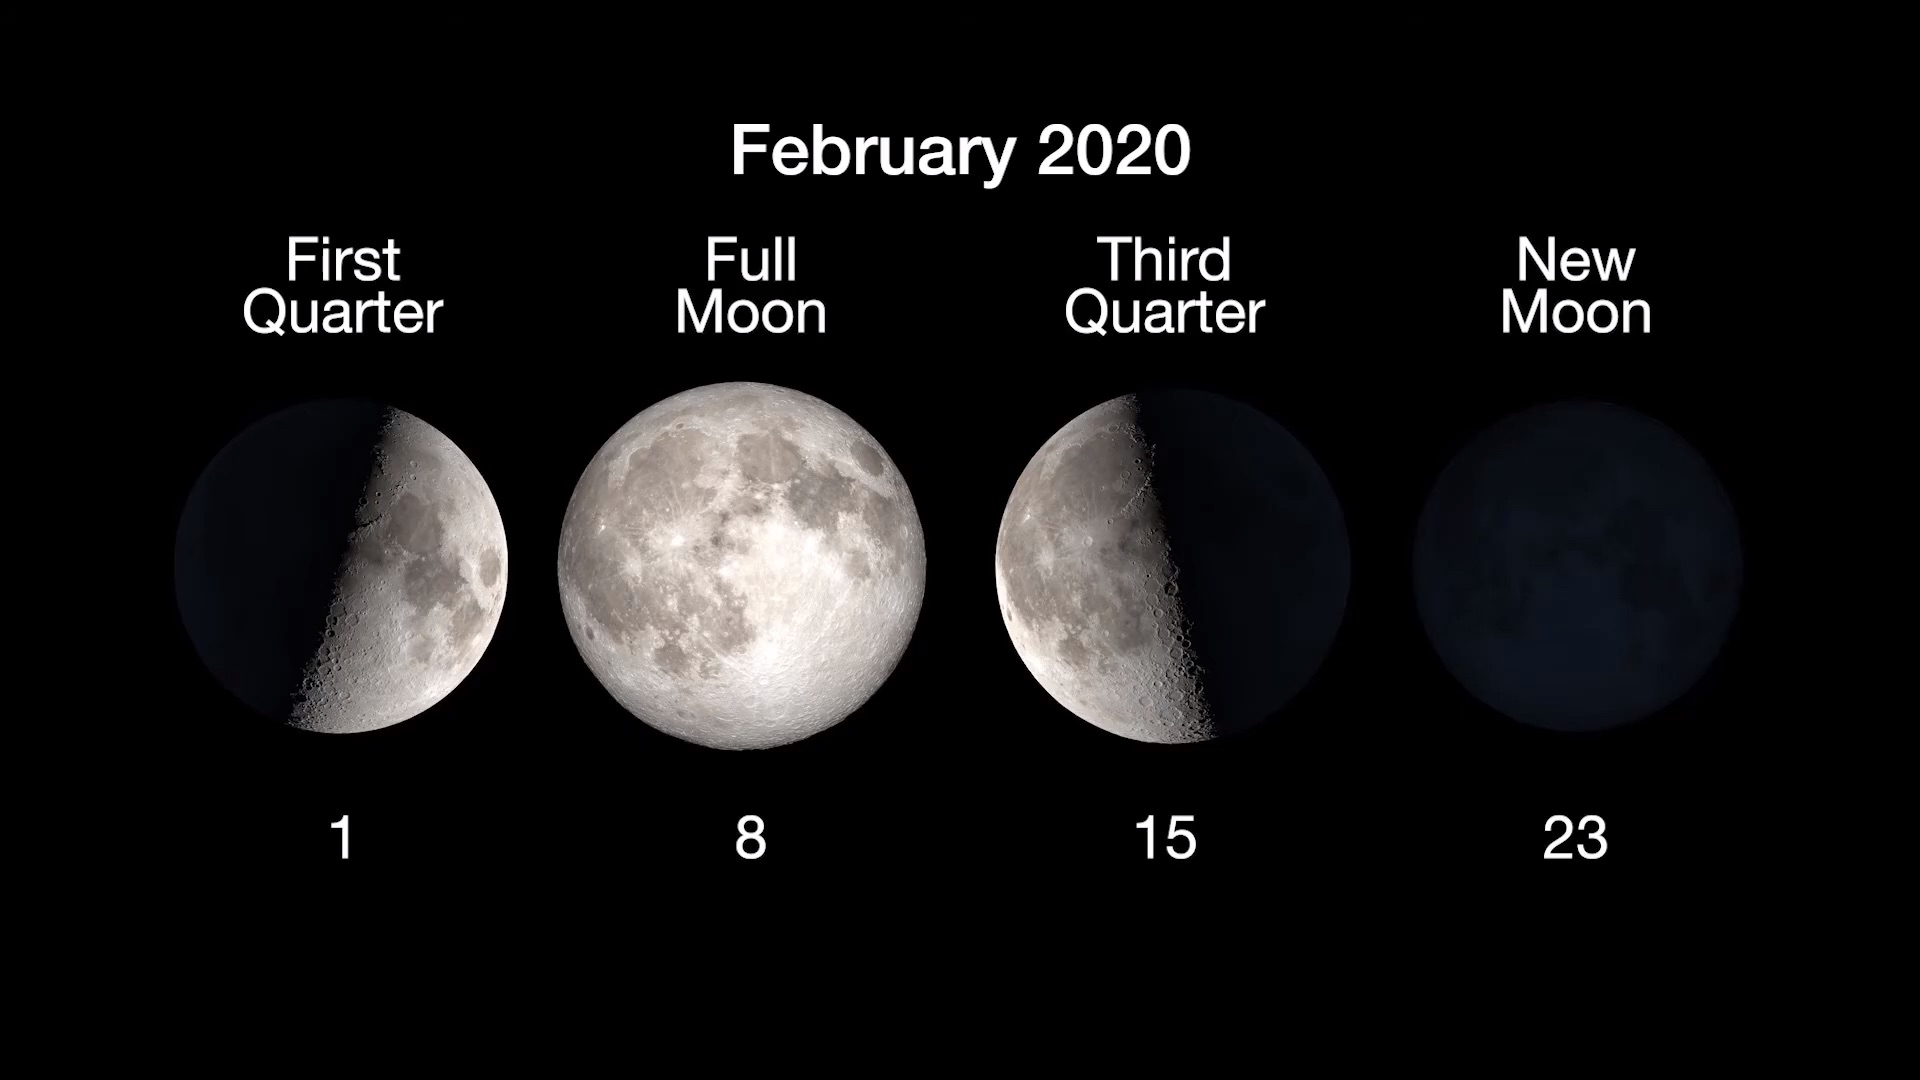 chart showing moon phases, with full on feb. 8 and new on feb. 23